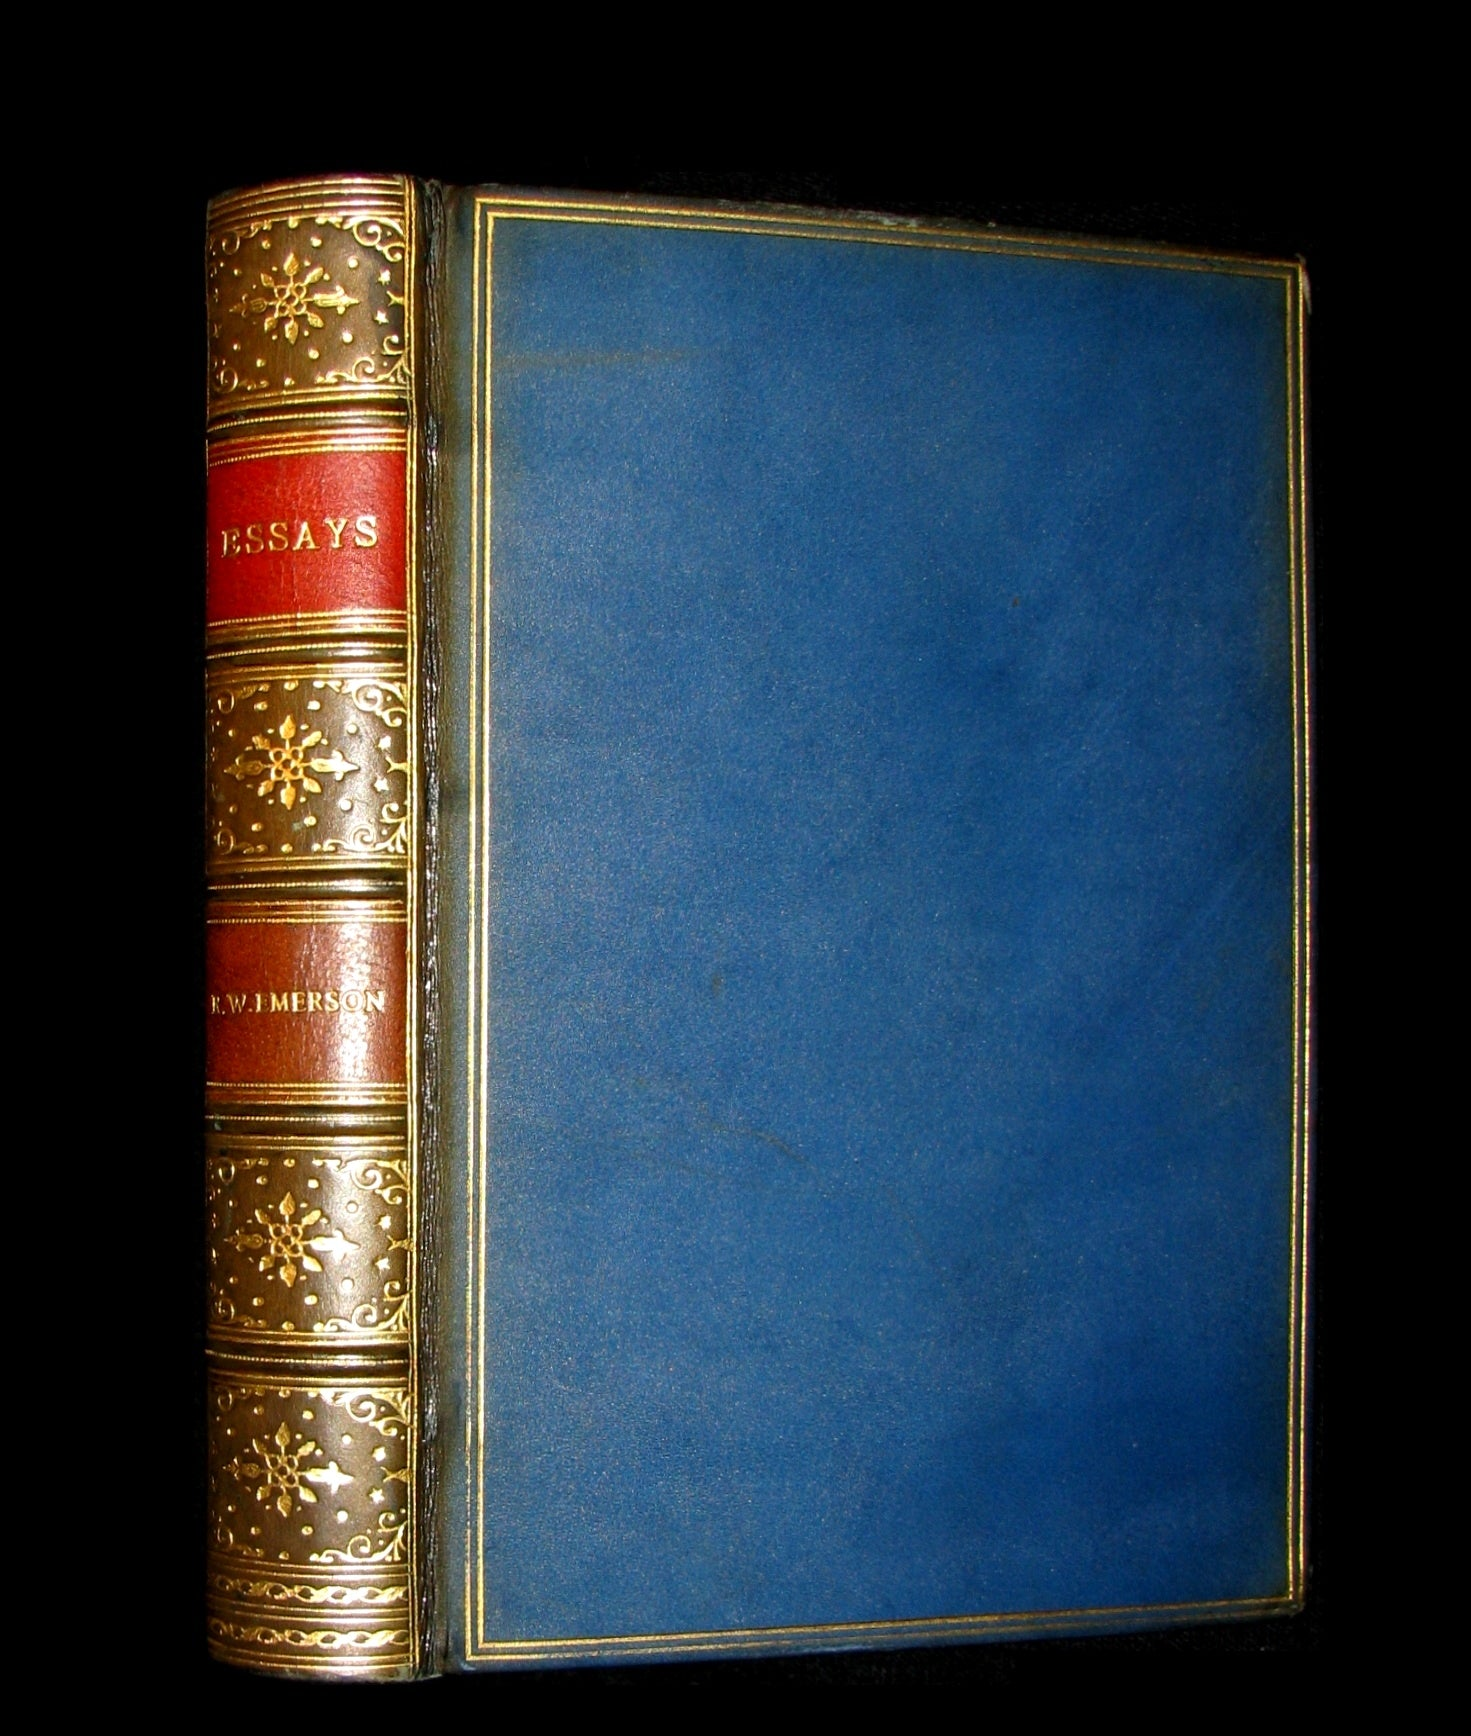 1929 Nice RIVIERE Binding - ESSAYS (First and Second Series) by Ralph Waldo EMERSON.